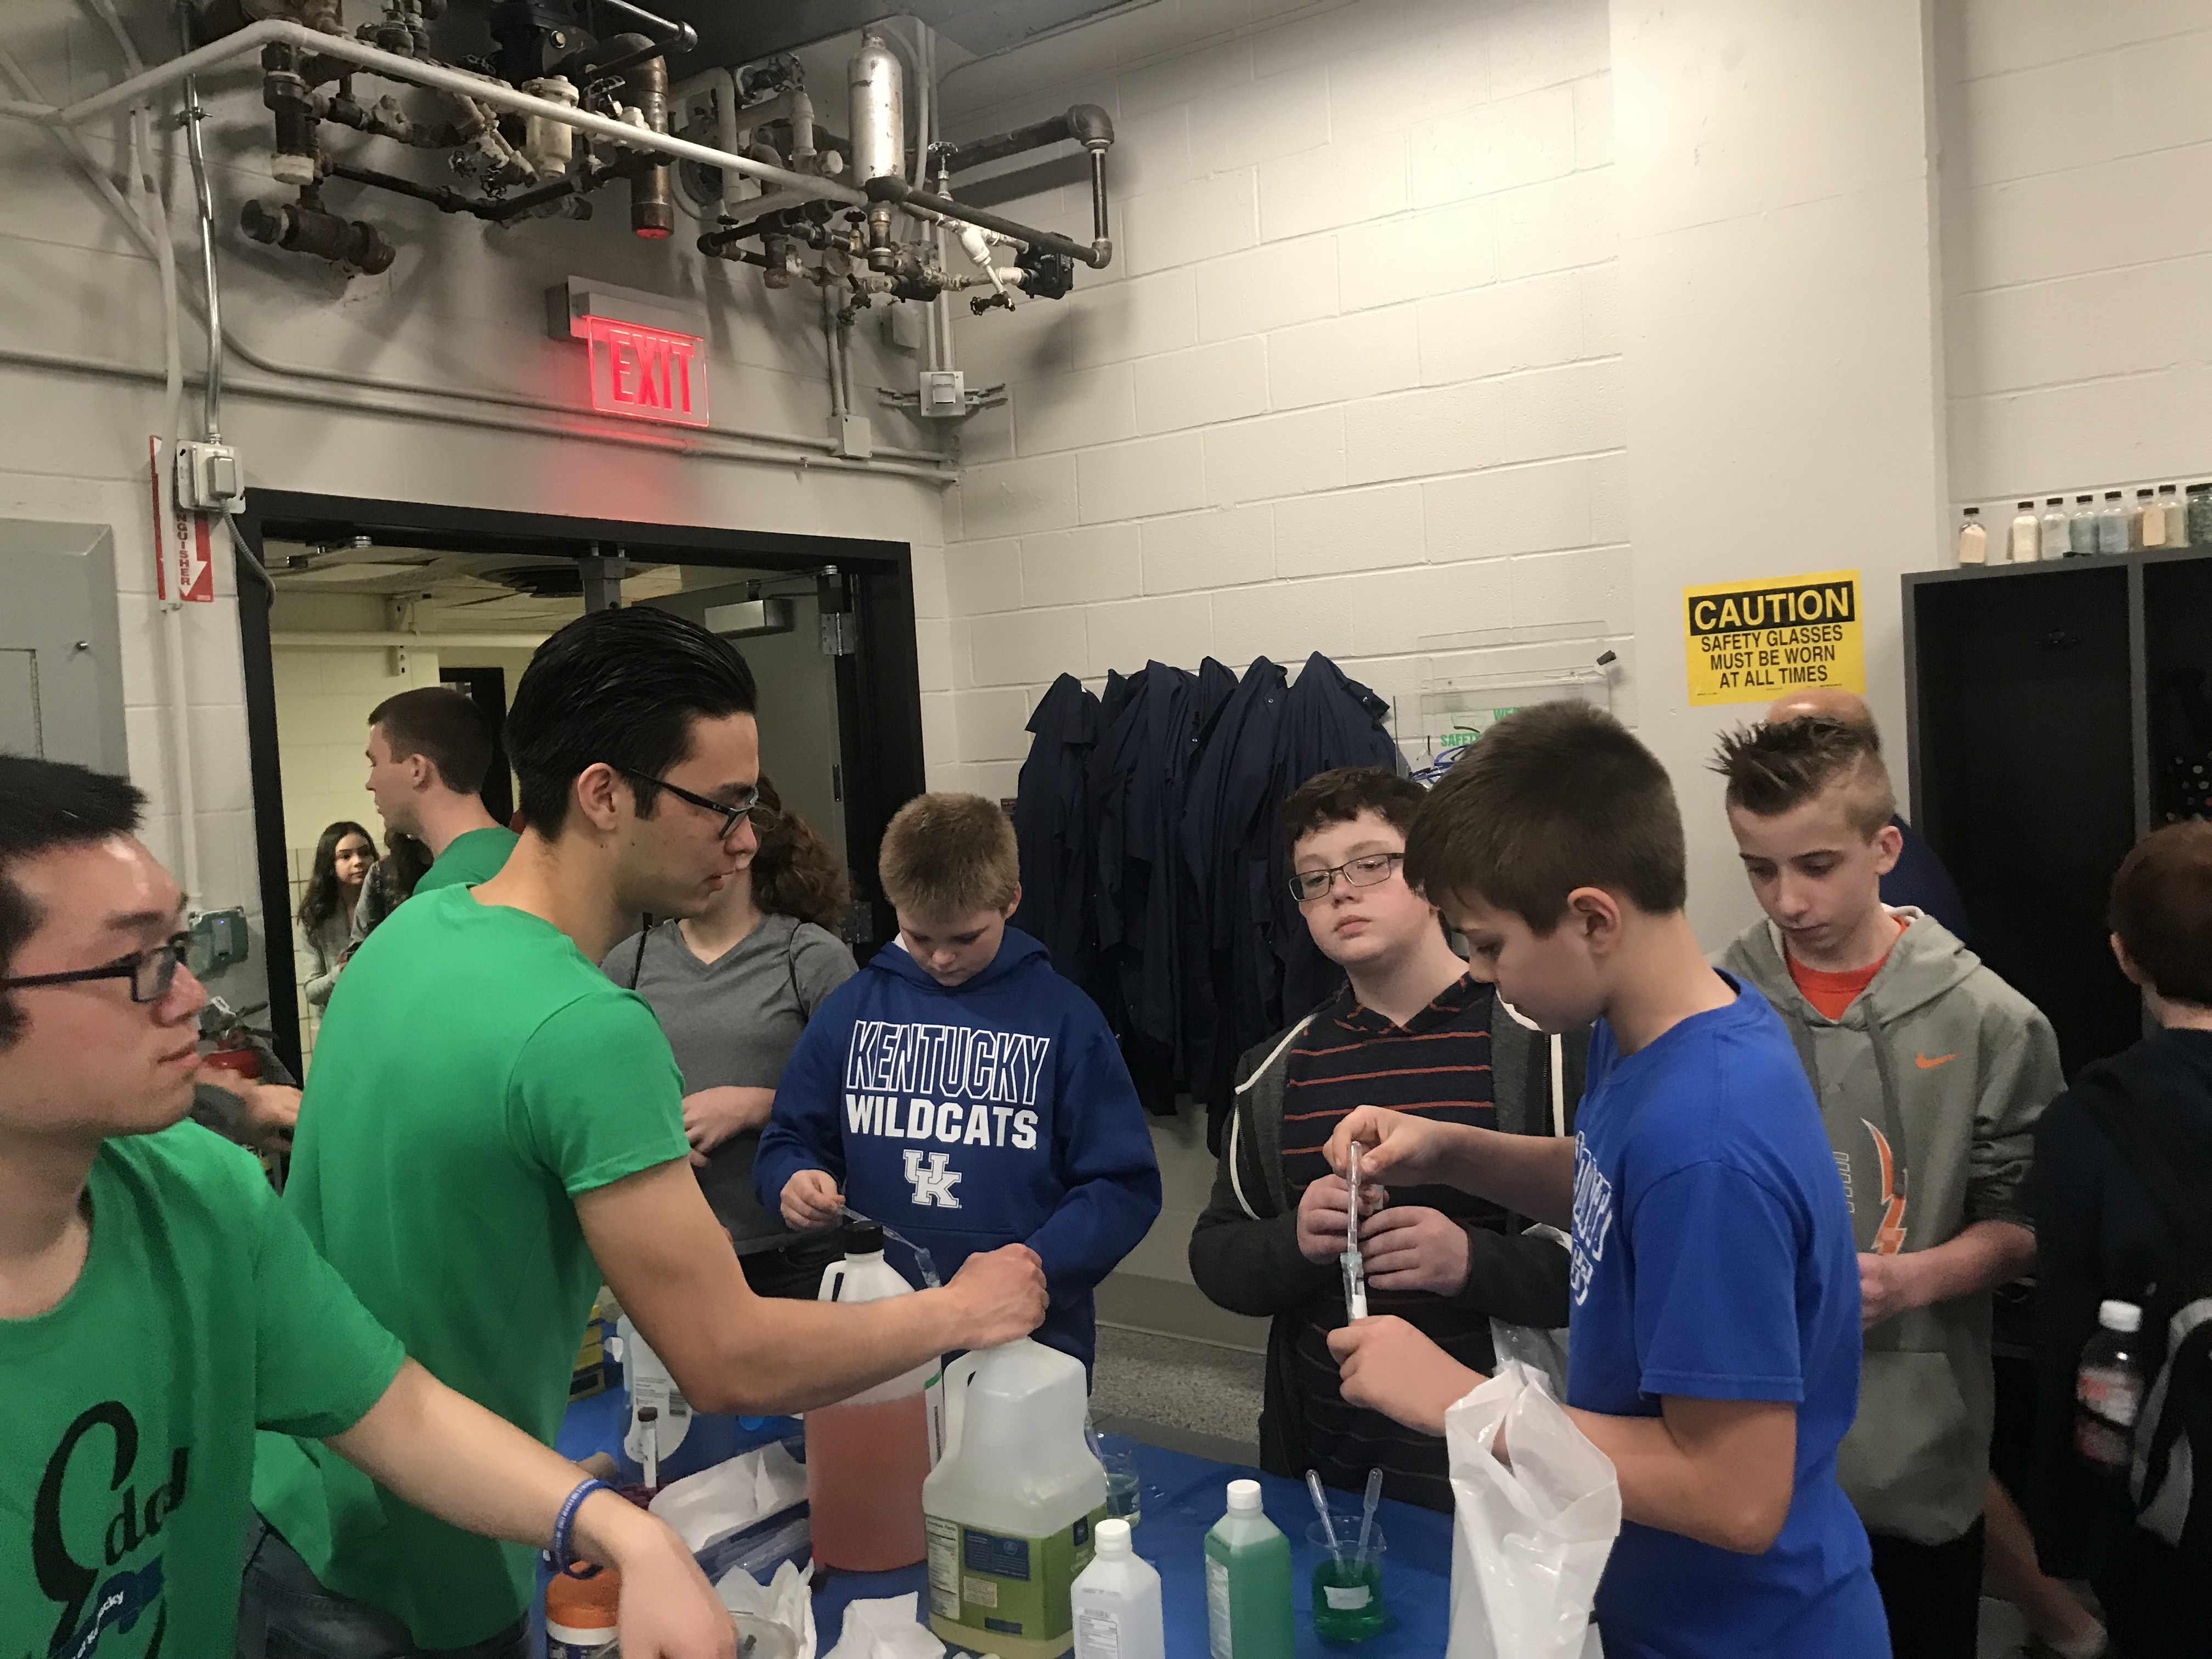 On Saturday, February 24, 2018, Clinton County Gifted & Talented students were transported to Lexington, Kentucky for the 2018 Engineers Day (E-Day).